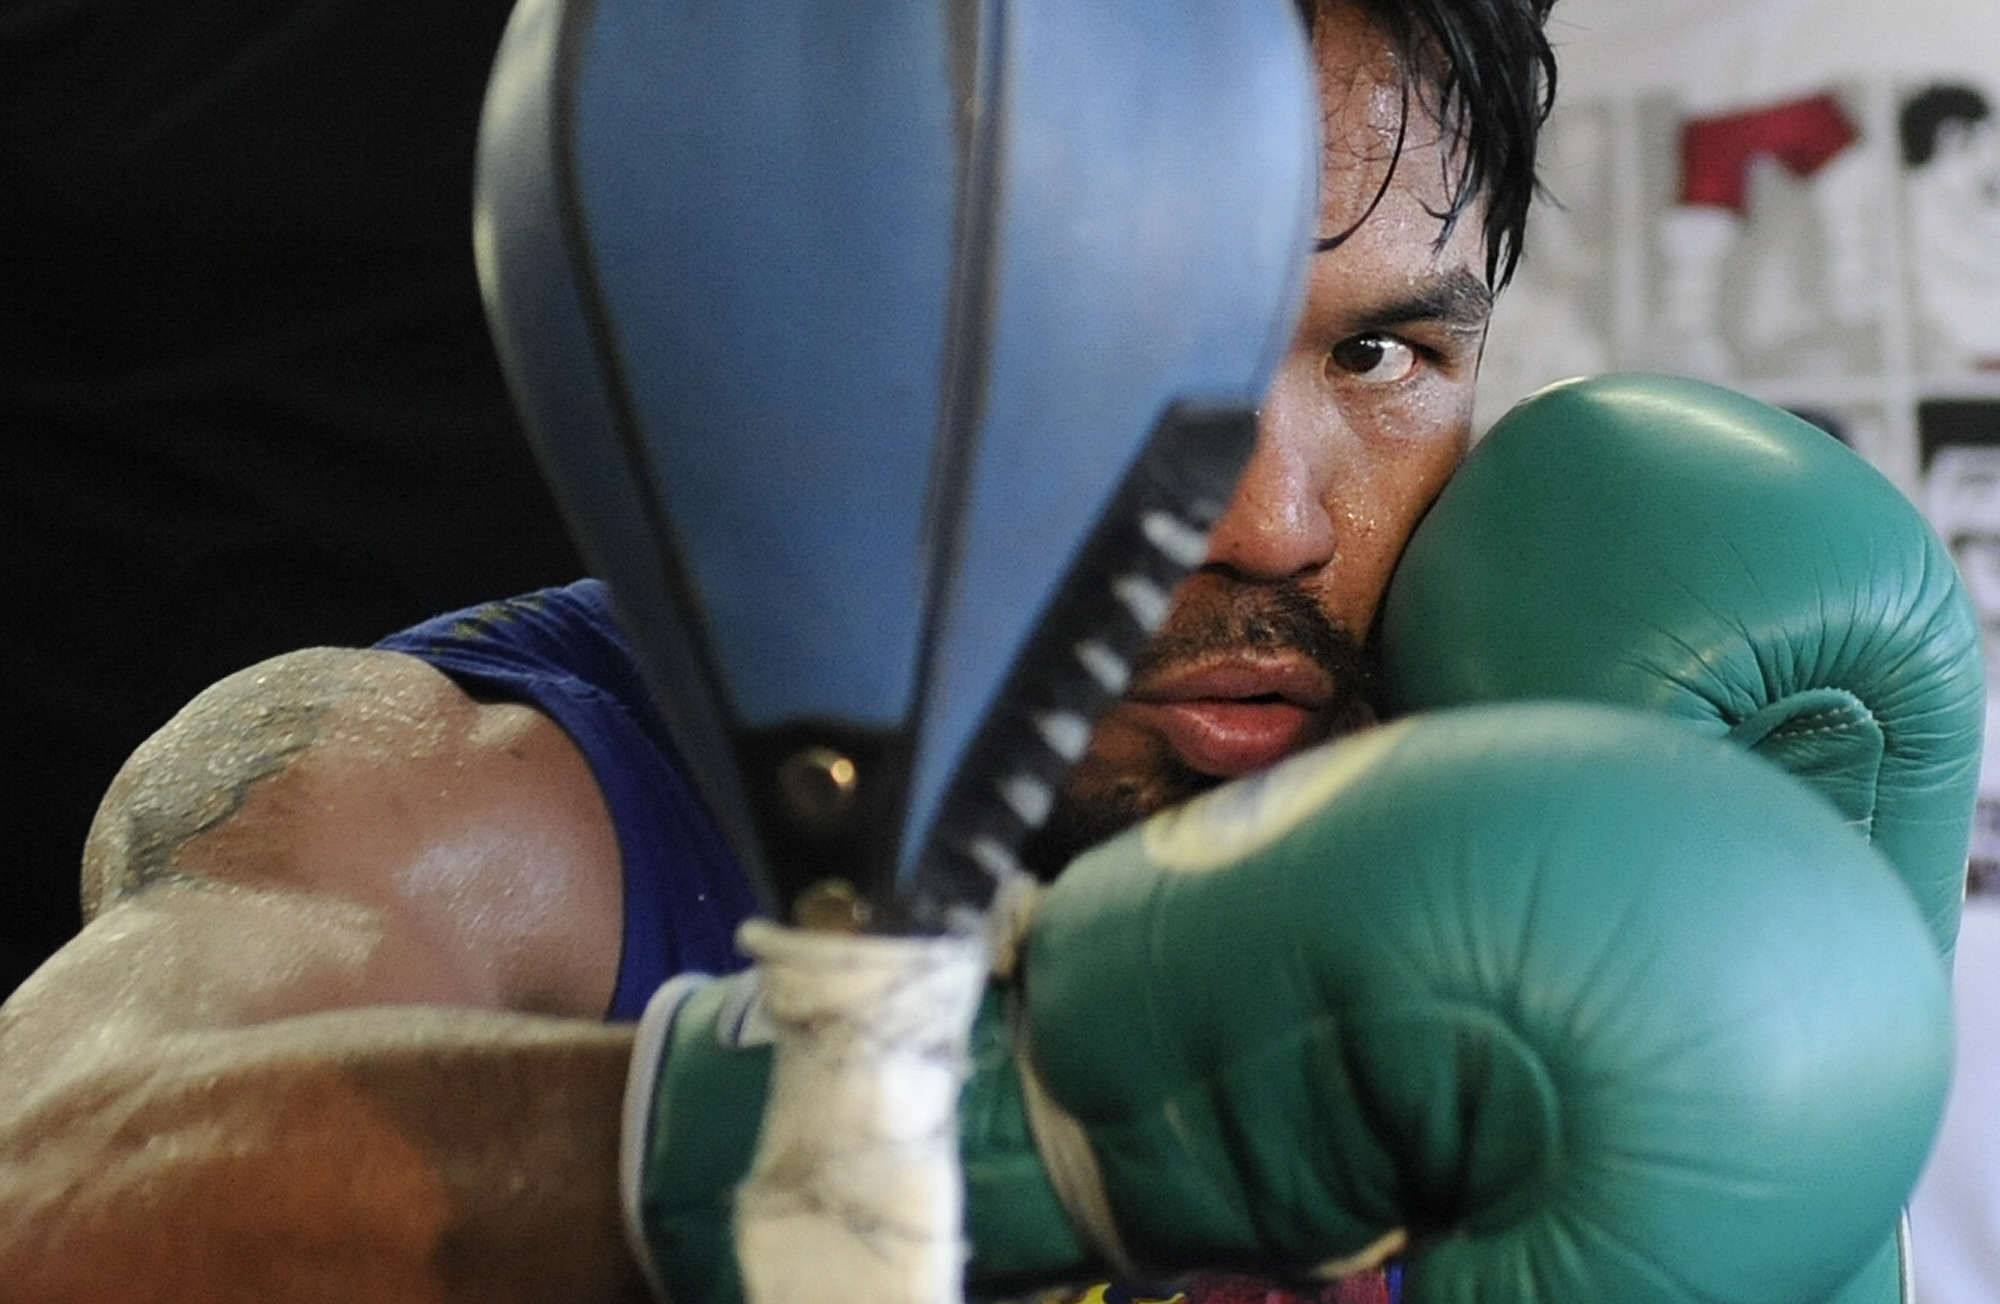 Manny Pacquiao Faces Backlash After Disgusting Homophobic Comments manny55